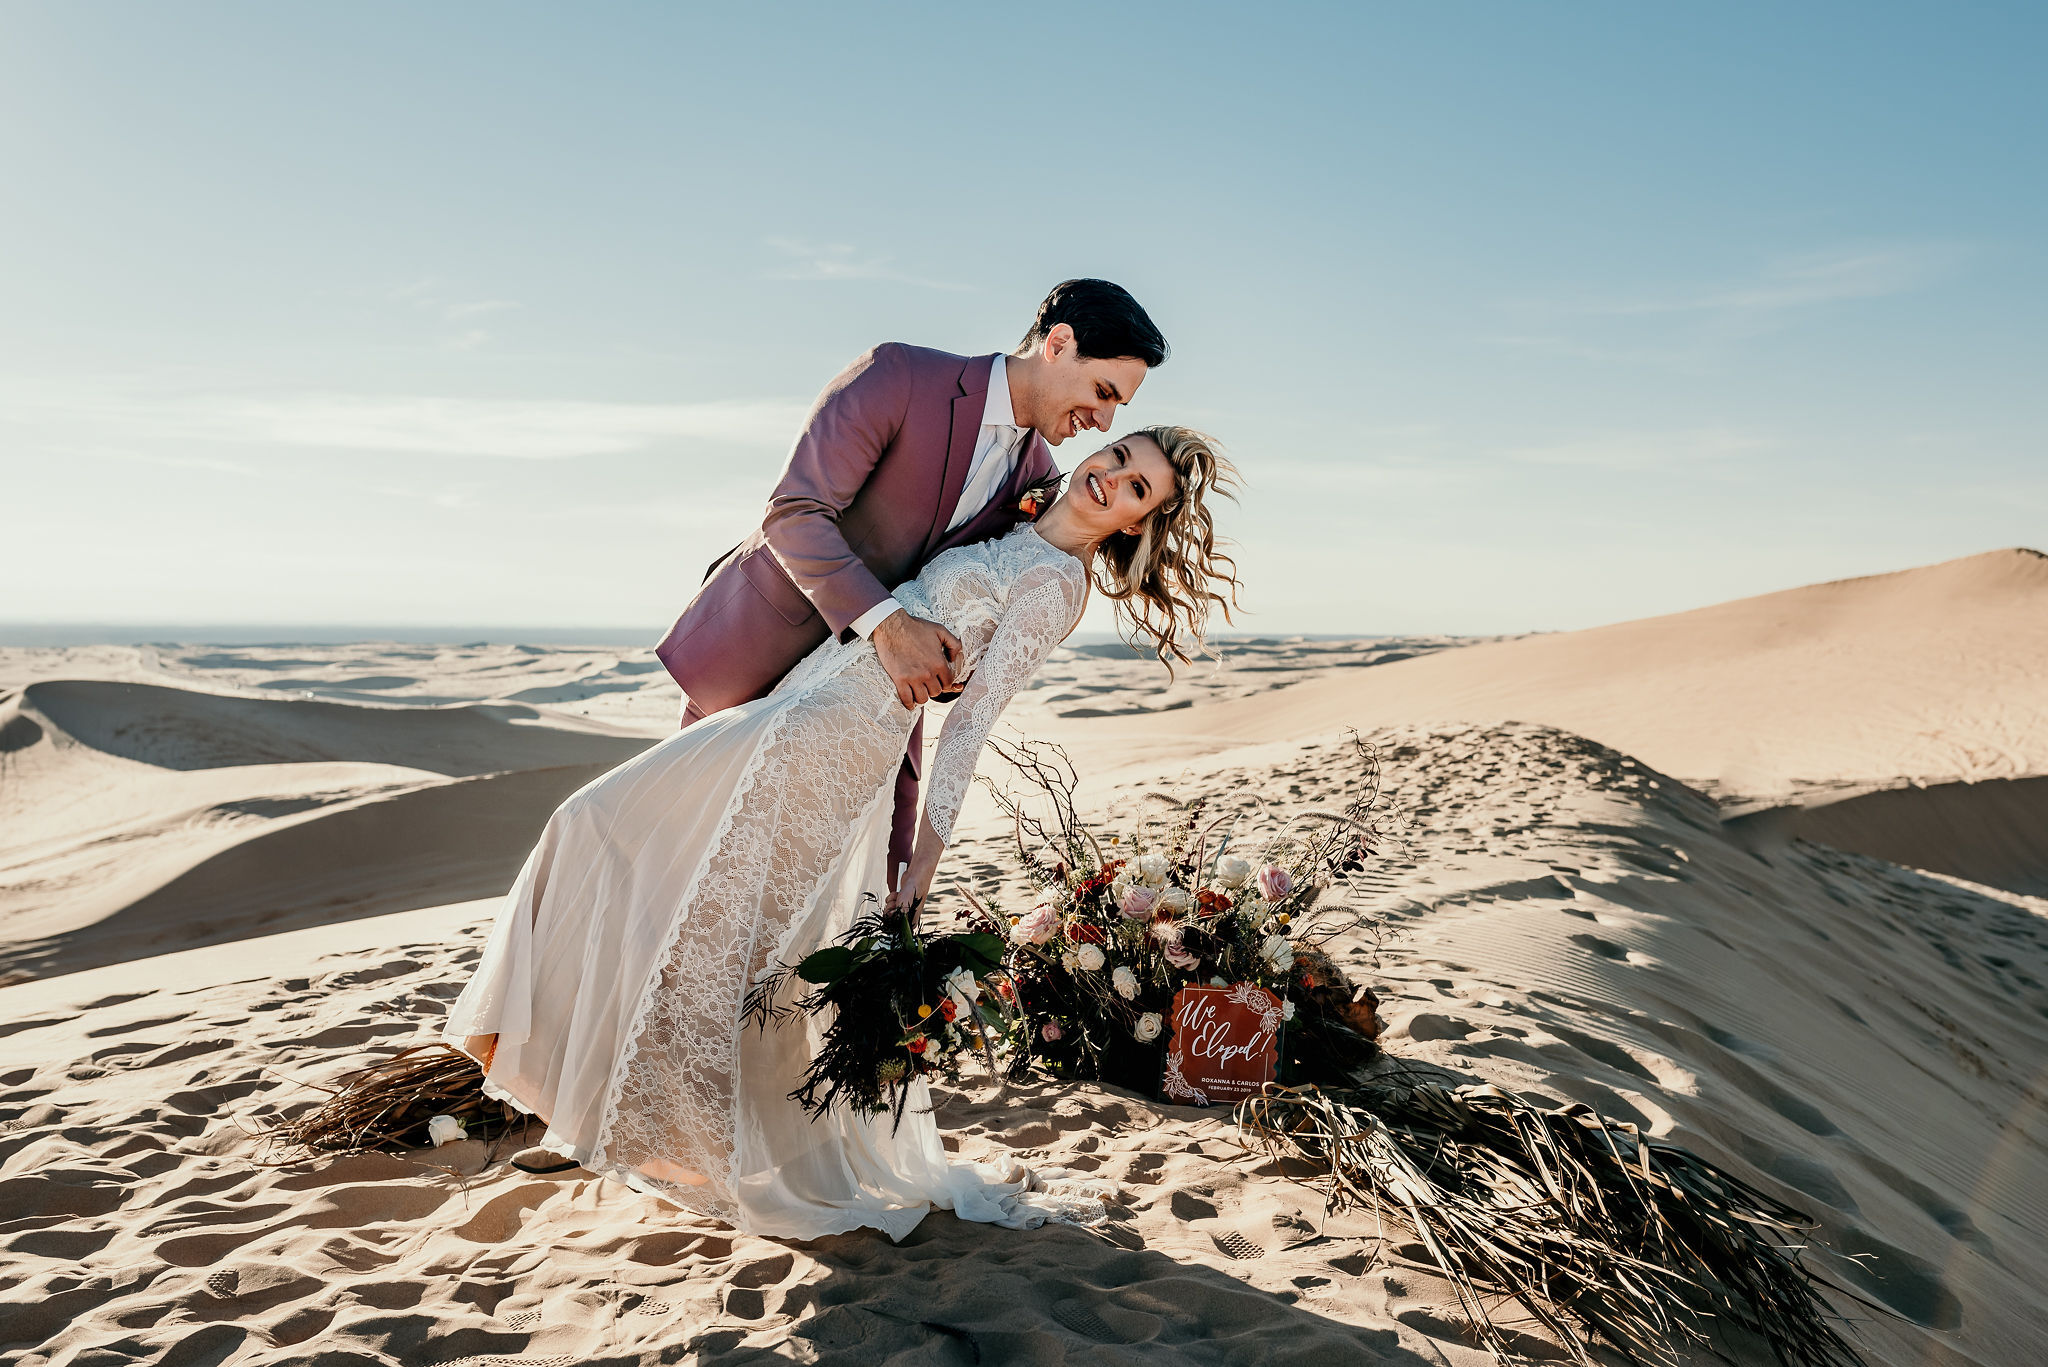 A bride and groom posing for photos in the desert